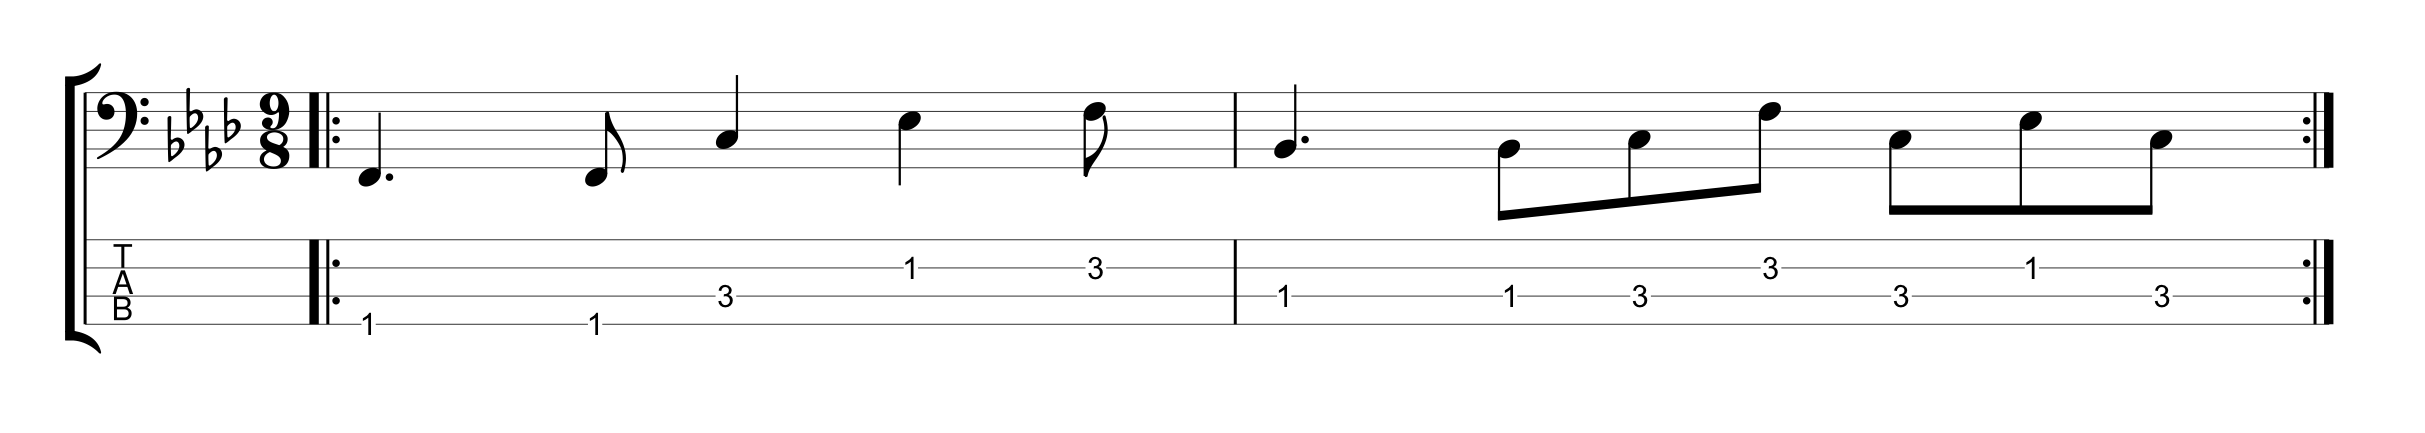 9/8 Time Signature Bass Groove Example 2